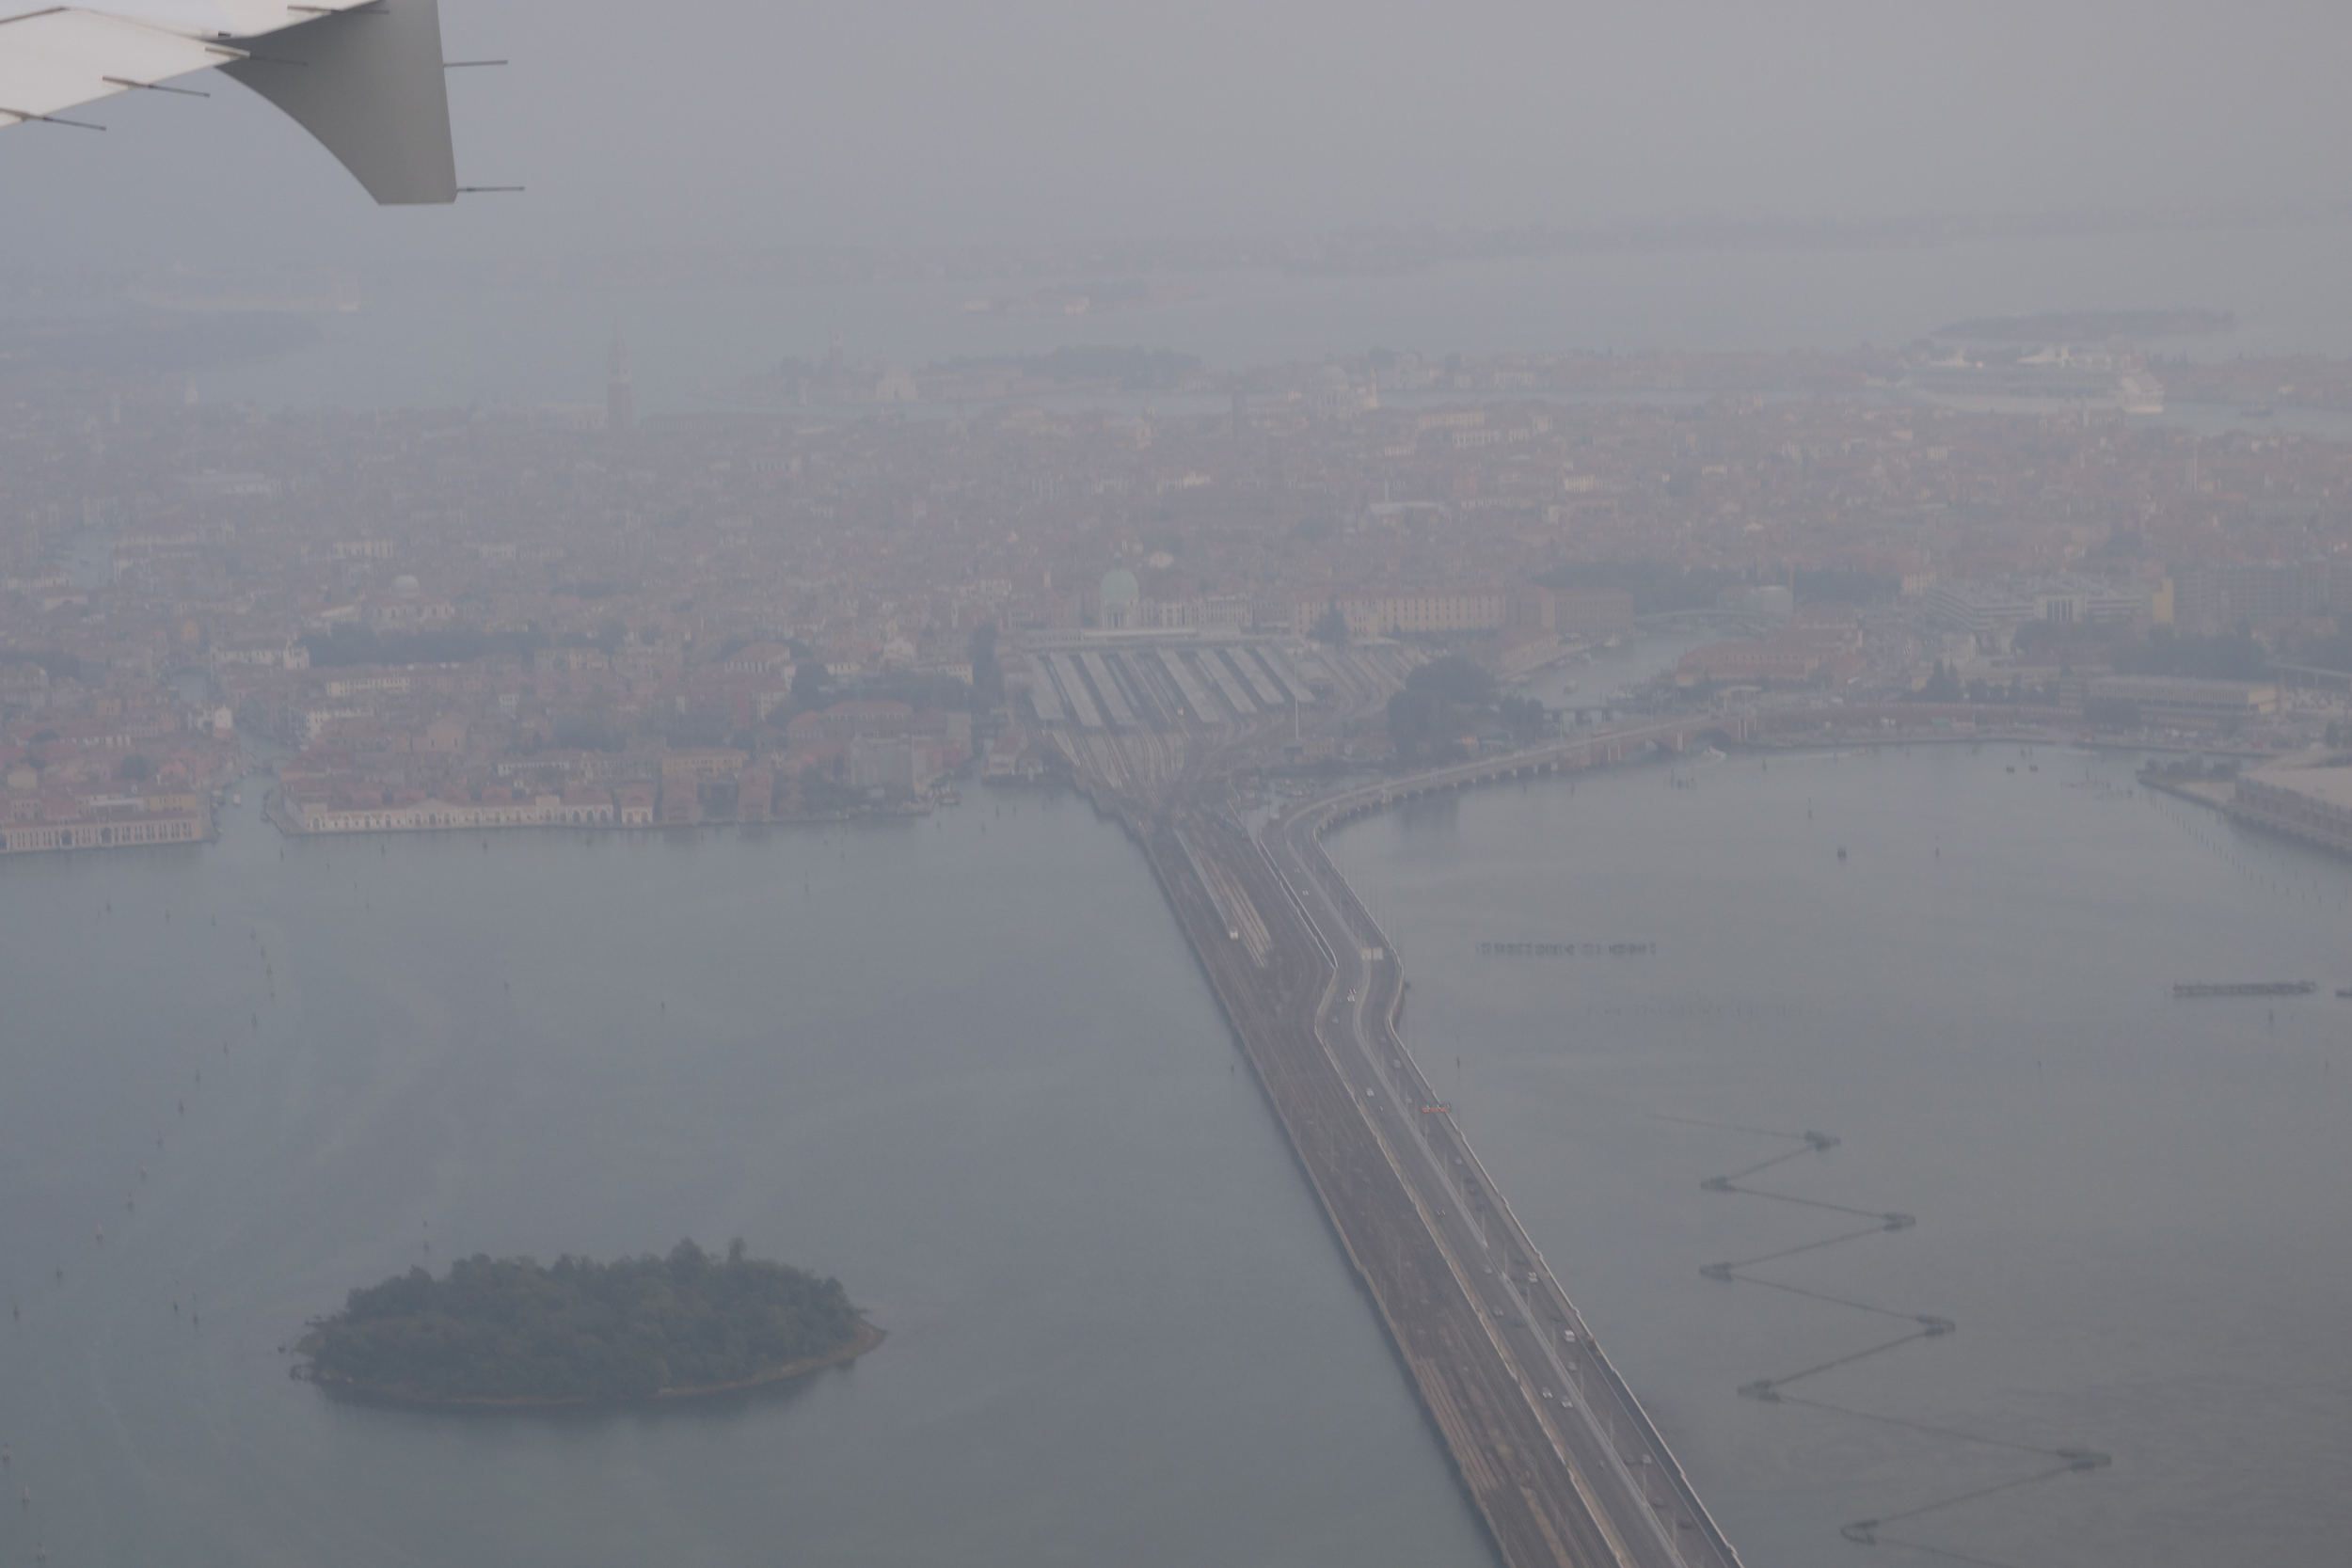 Venice by planewing - unfortunately as close as I got this trip.